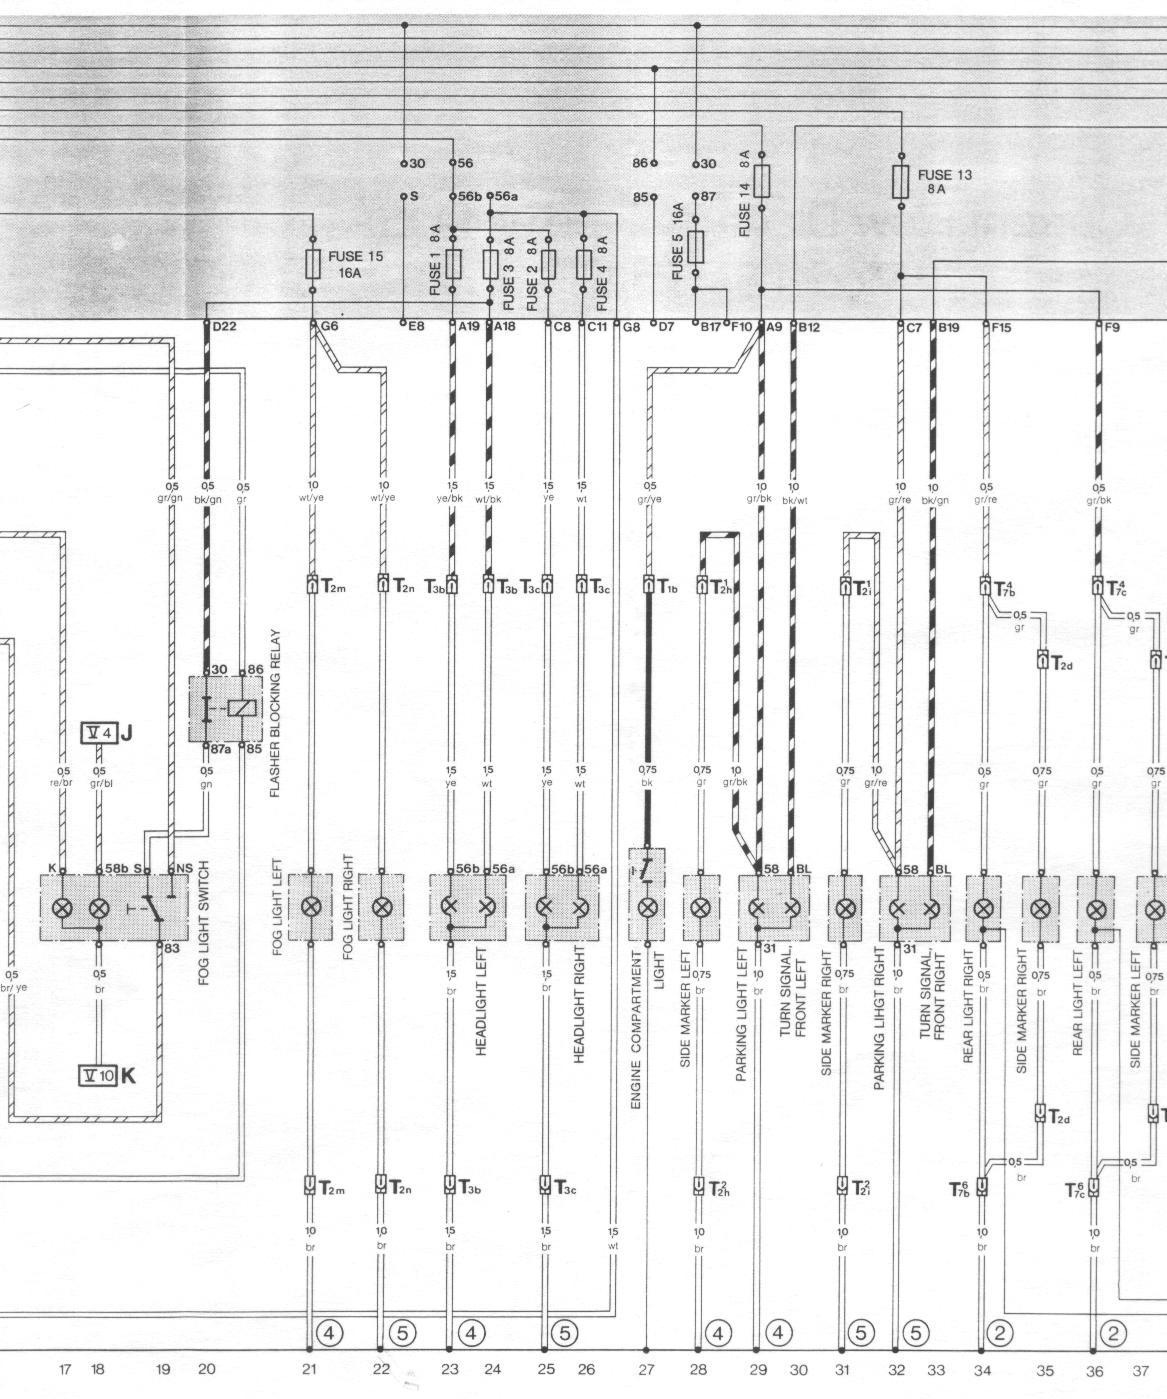 Coil Wiring Diagram For A 88 944 Sample 1983 Mercedes Diagrams Pelican Parts Porsche 924 Electrical